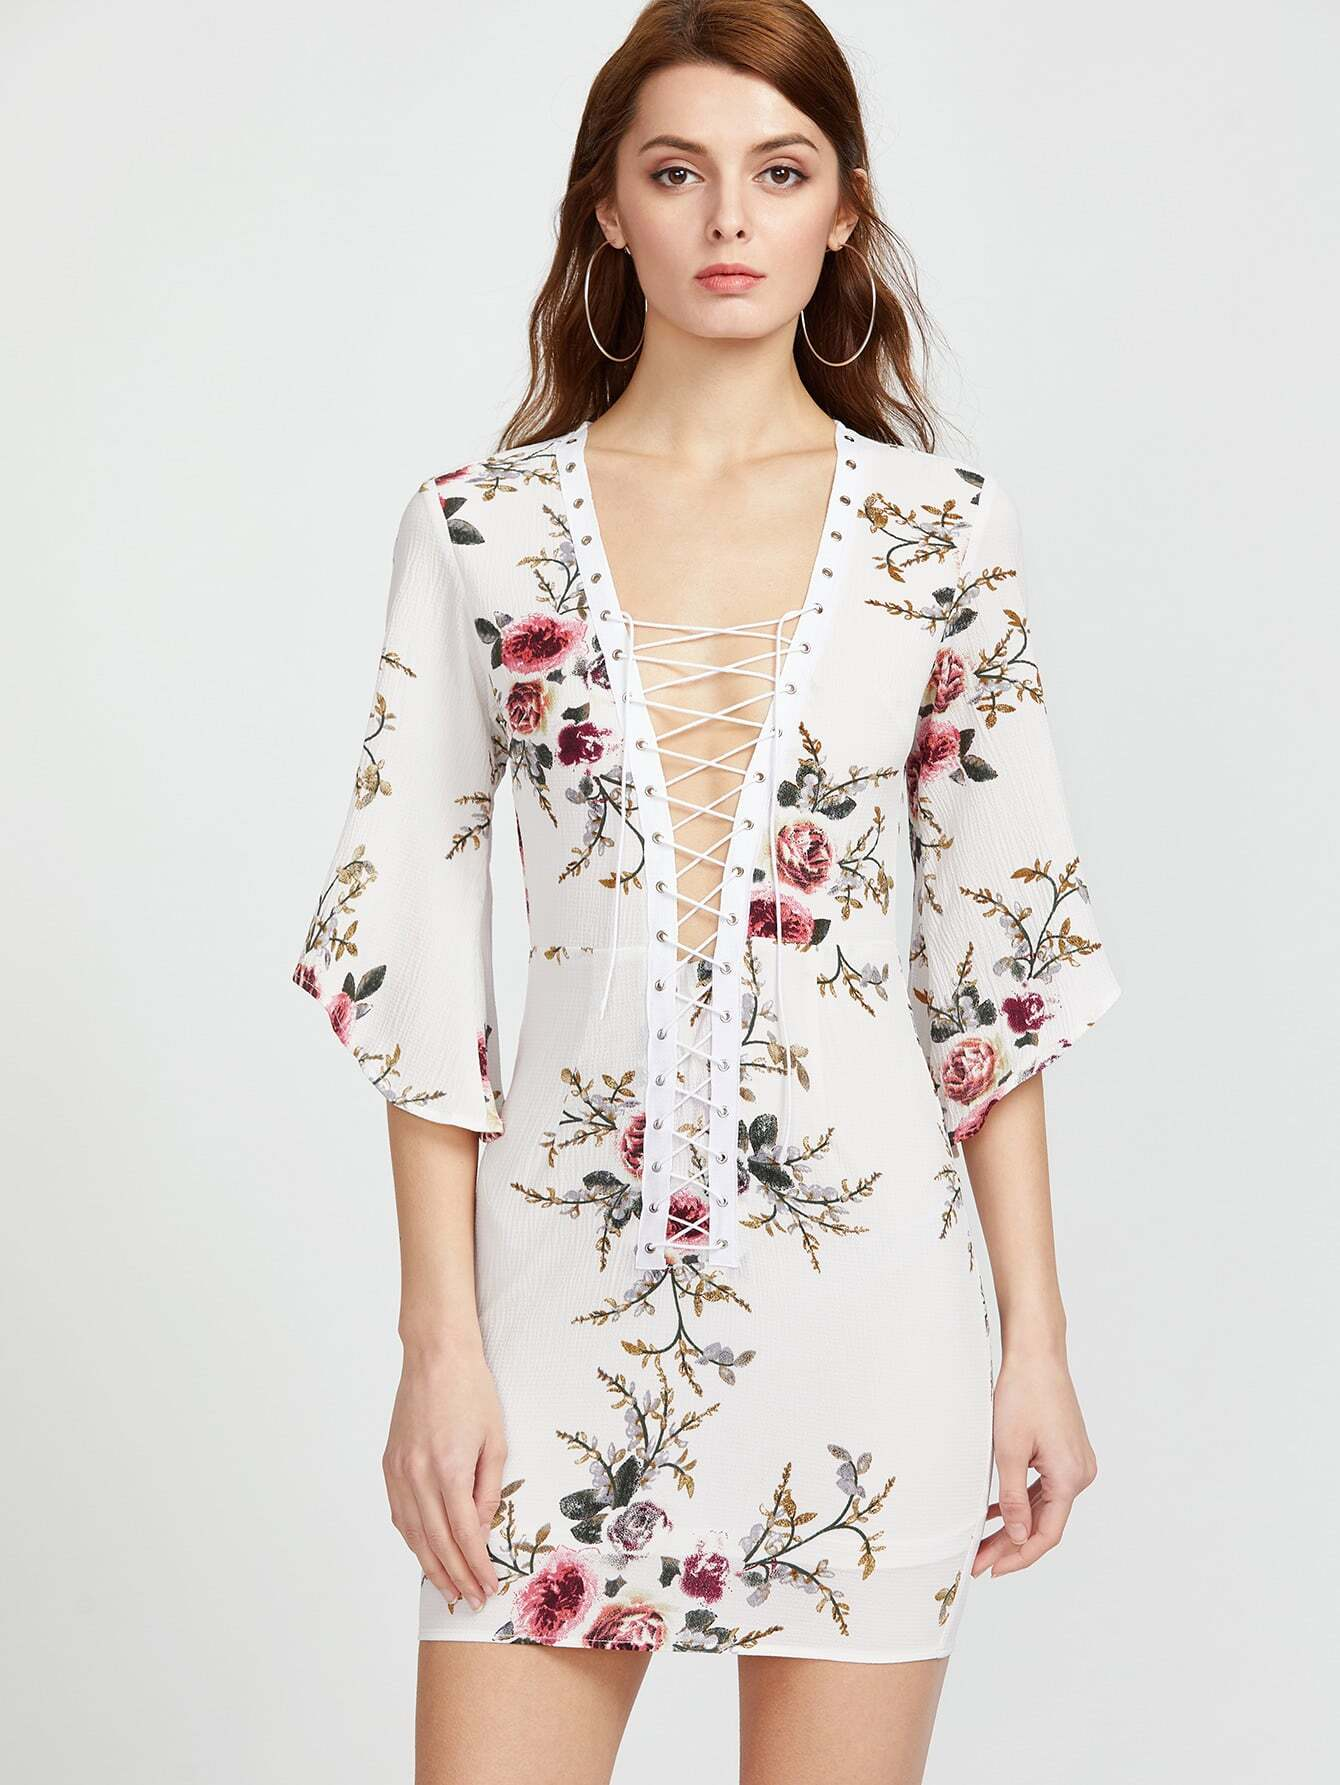 White Floral Print Lace Up Elbow Sleeve Dress